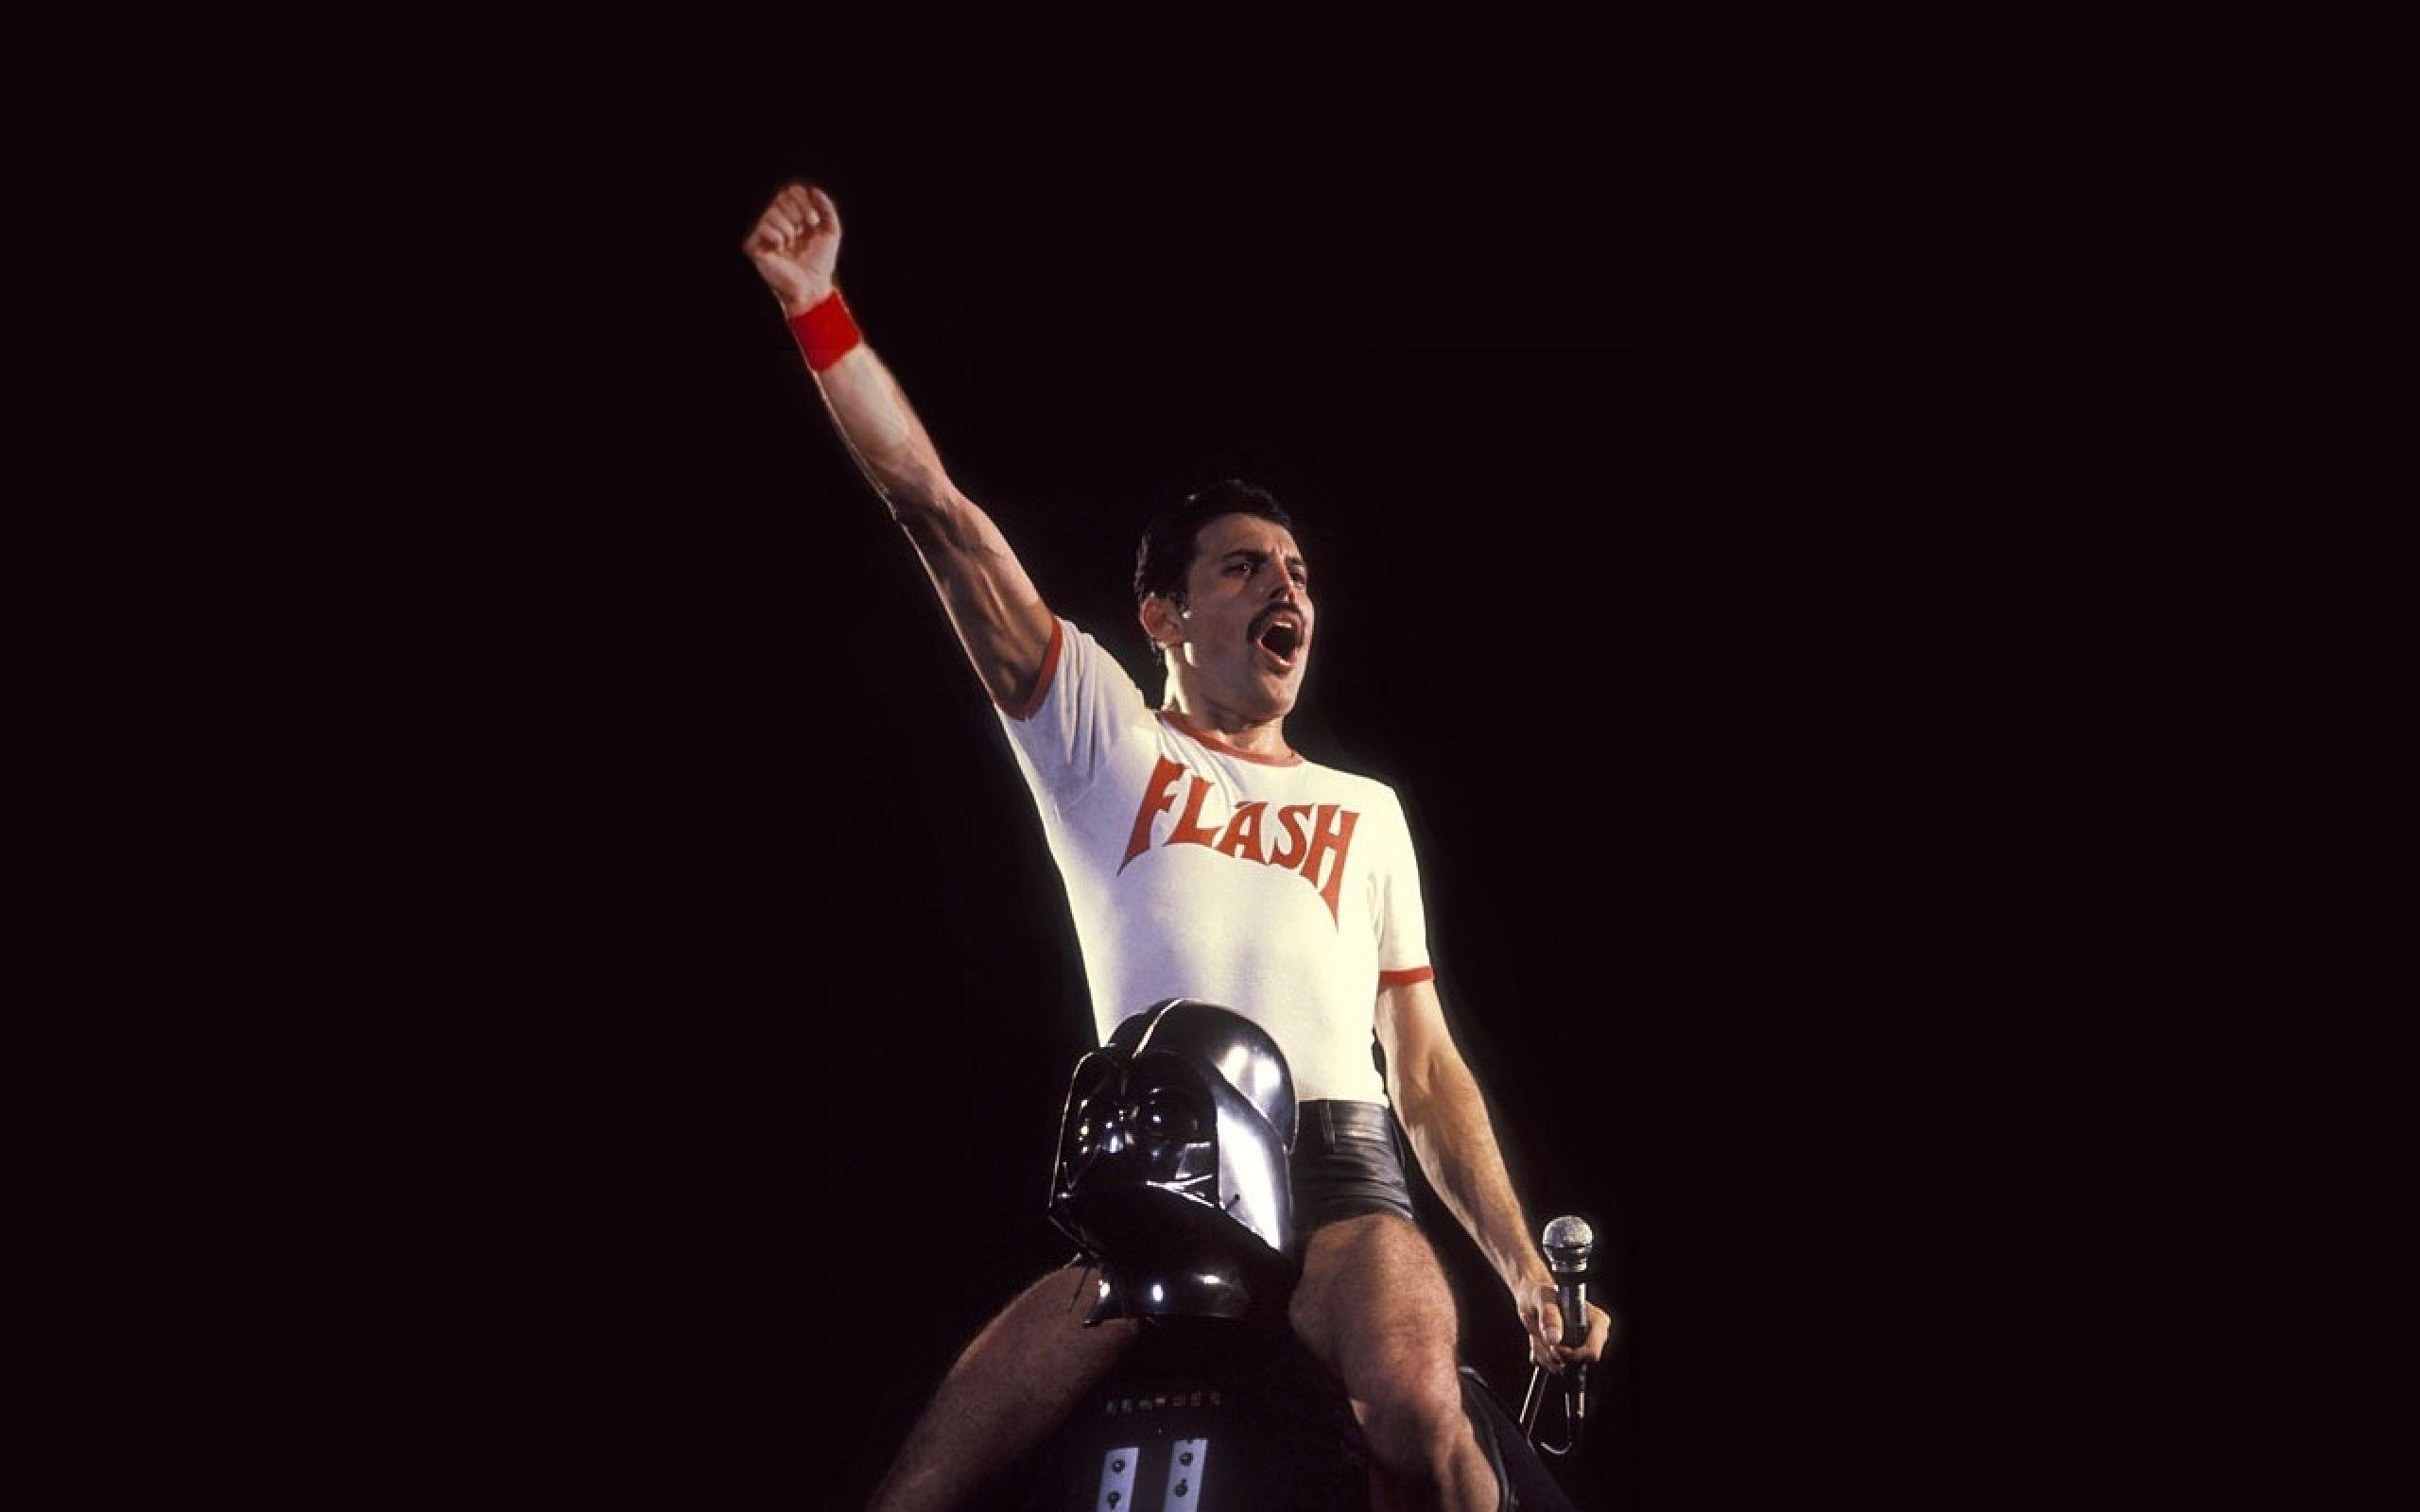 Download Wallpapers, Download 2560x1600 darth vader freddie